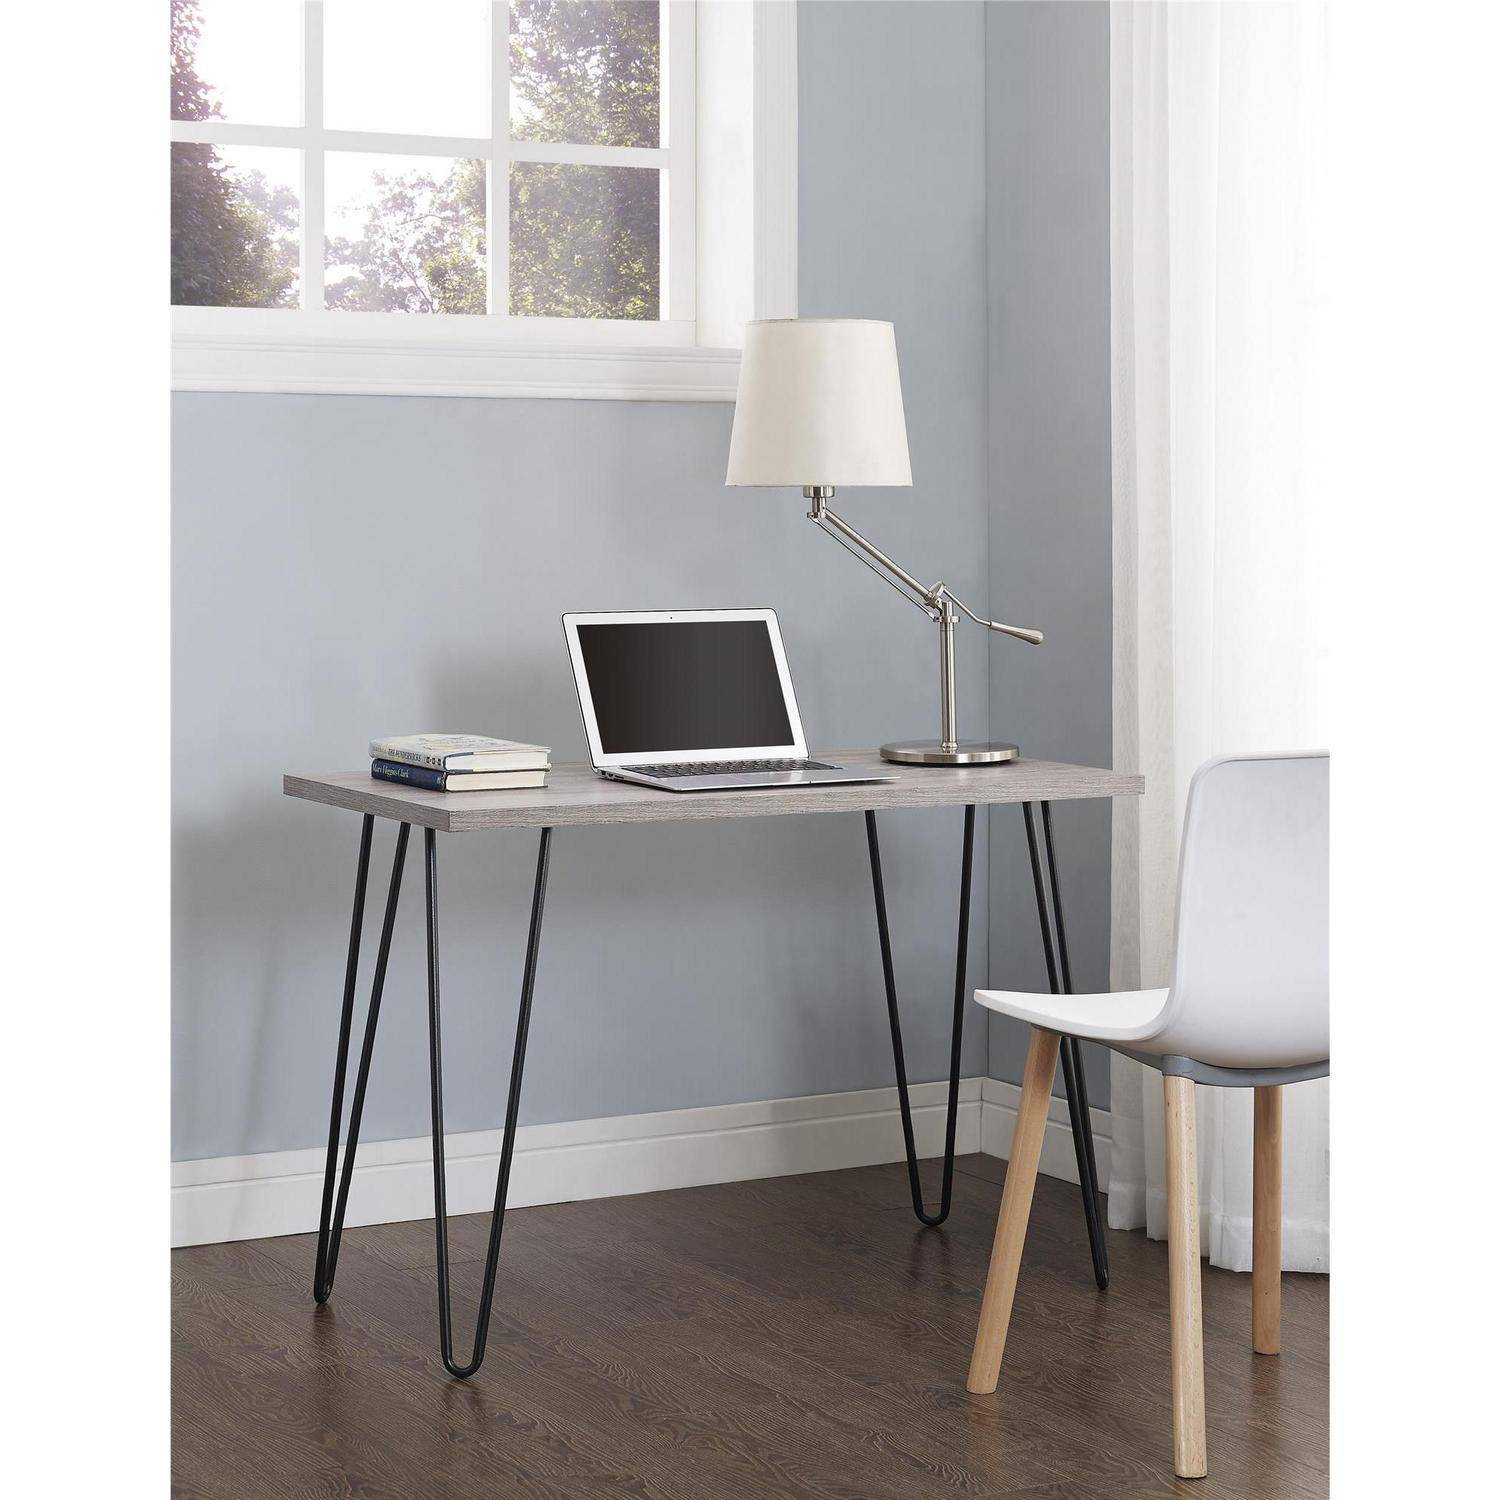 Altra Furniture Owen Student Writing Desk, Multiple Colors